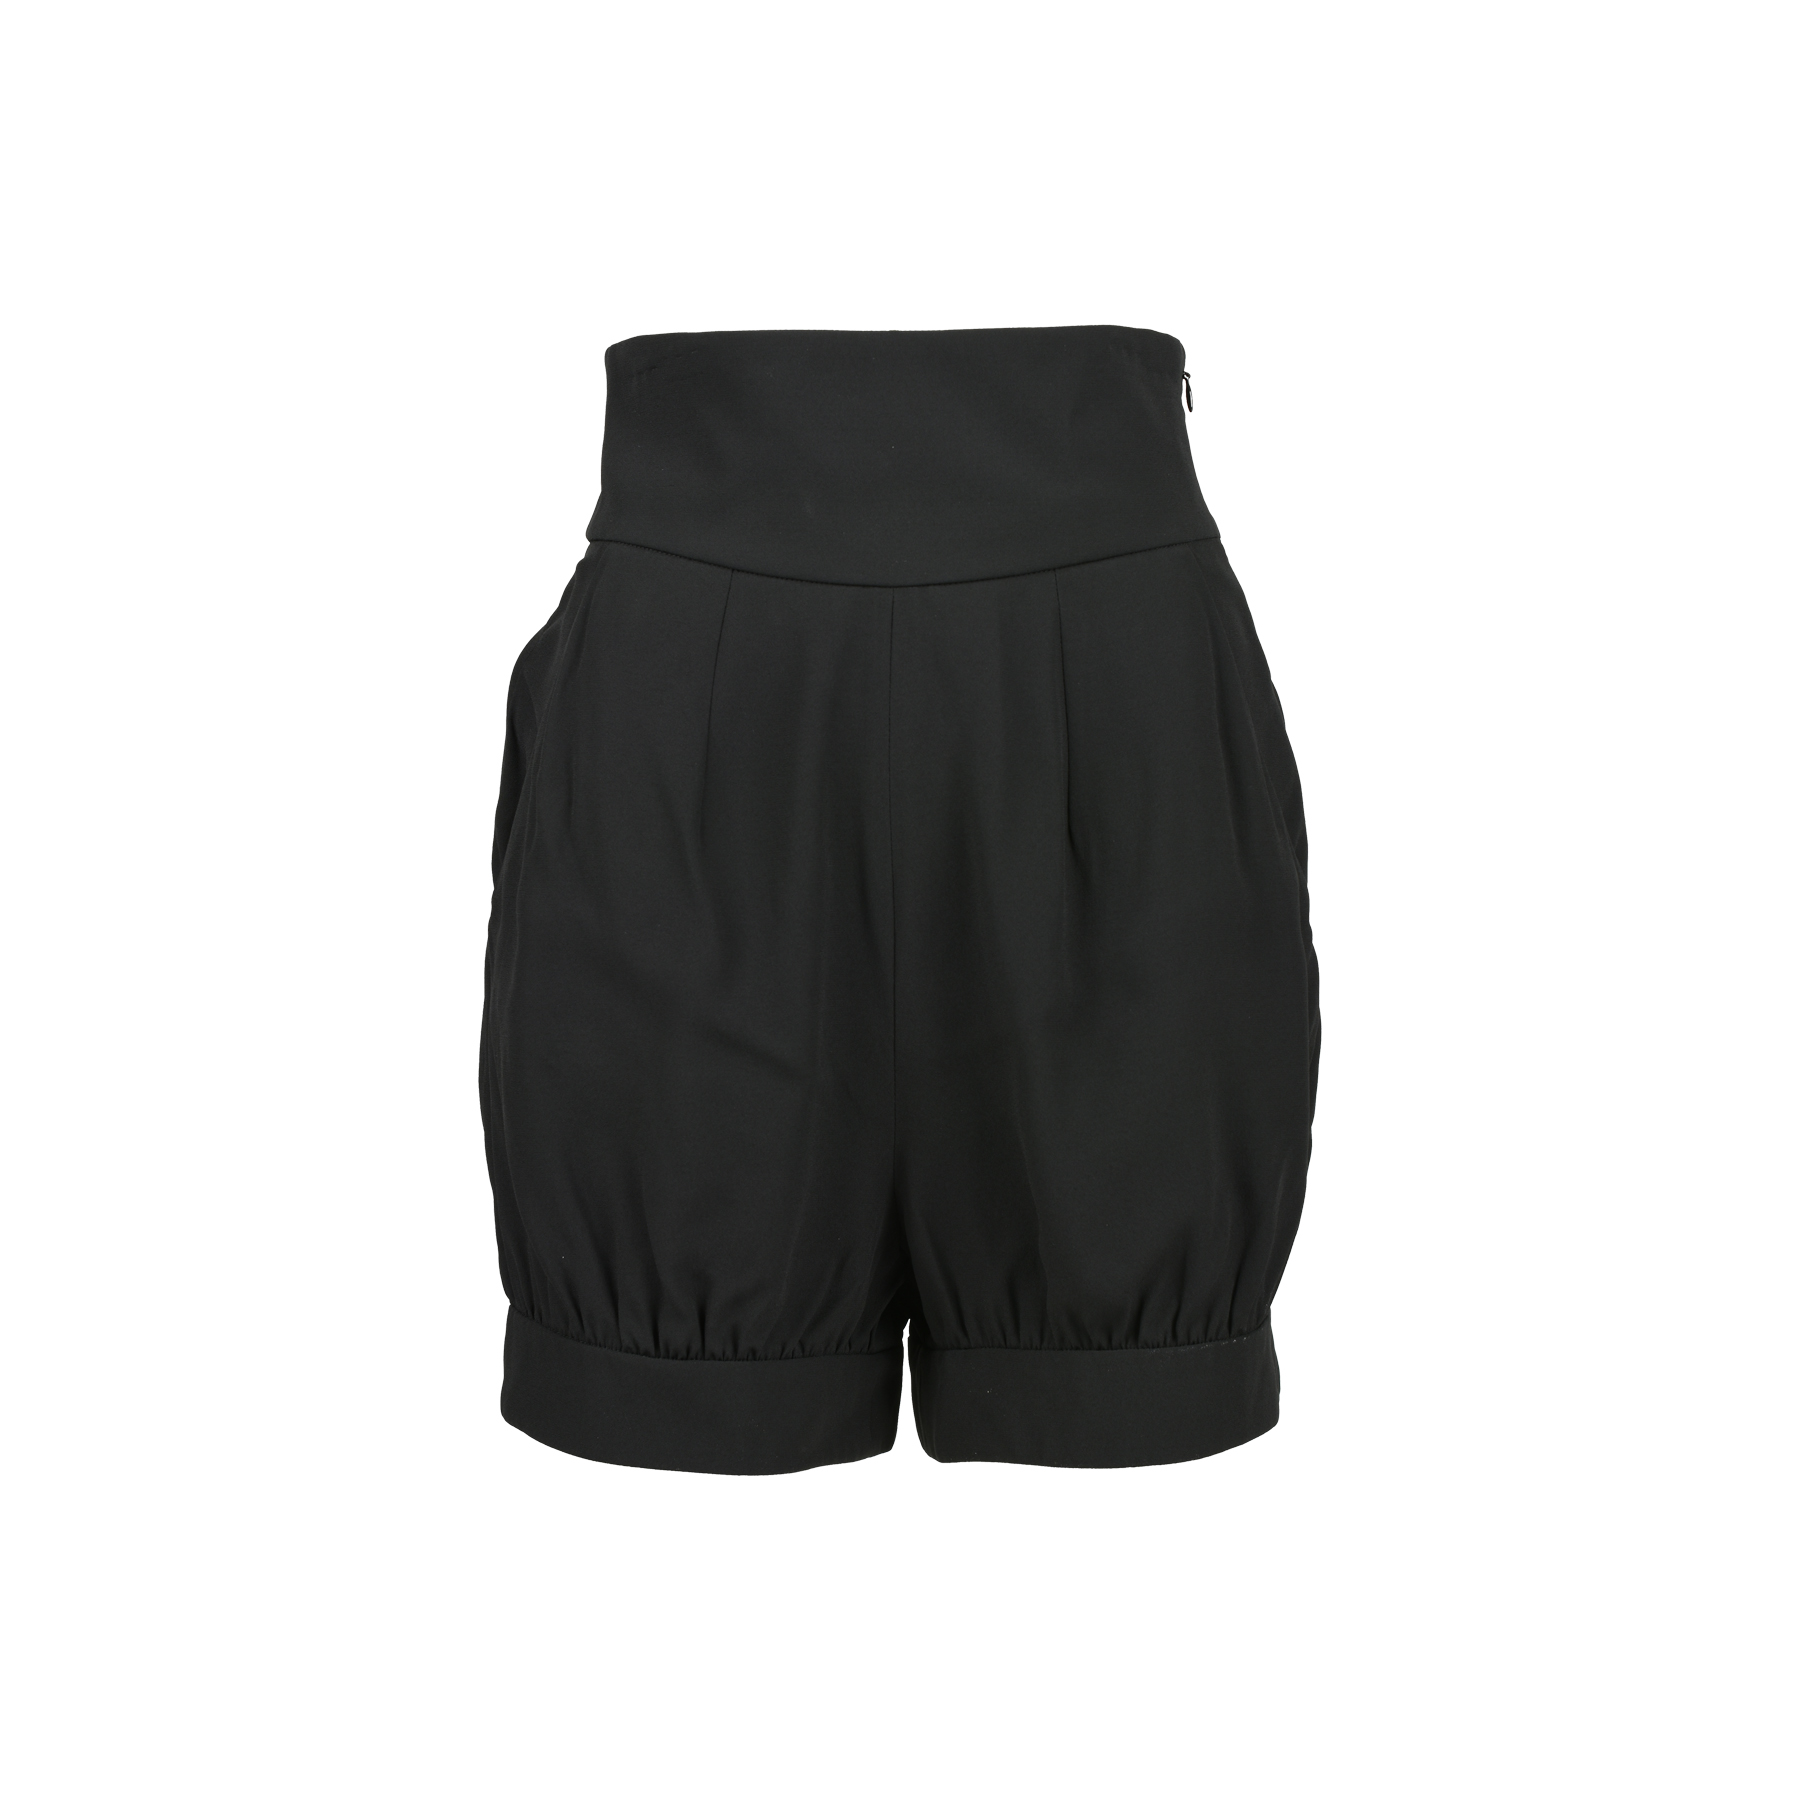 47f0bbf19b7 Authentic Second Hand Yves Saint Laurent High-Waisted Shorts  (PSS-486-00011) - THE FIFTH COLLECTION